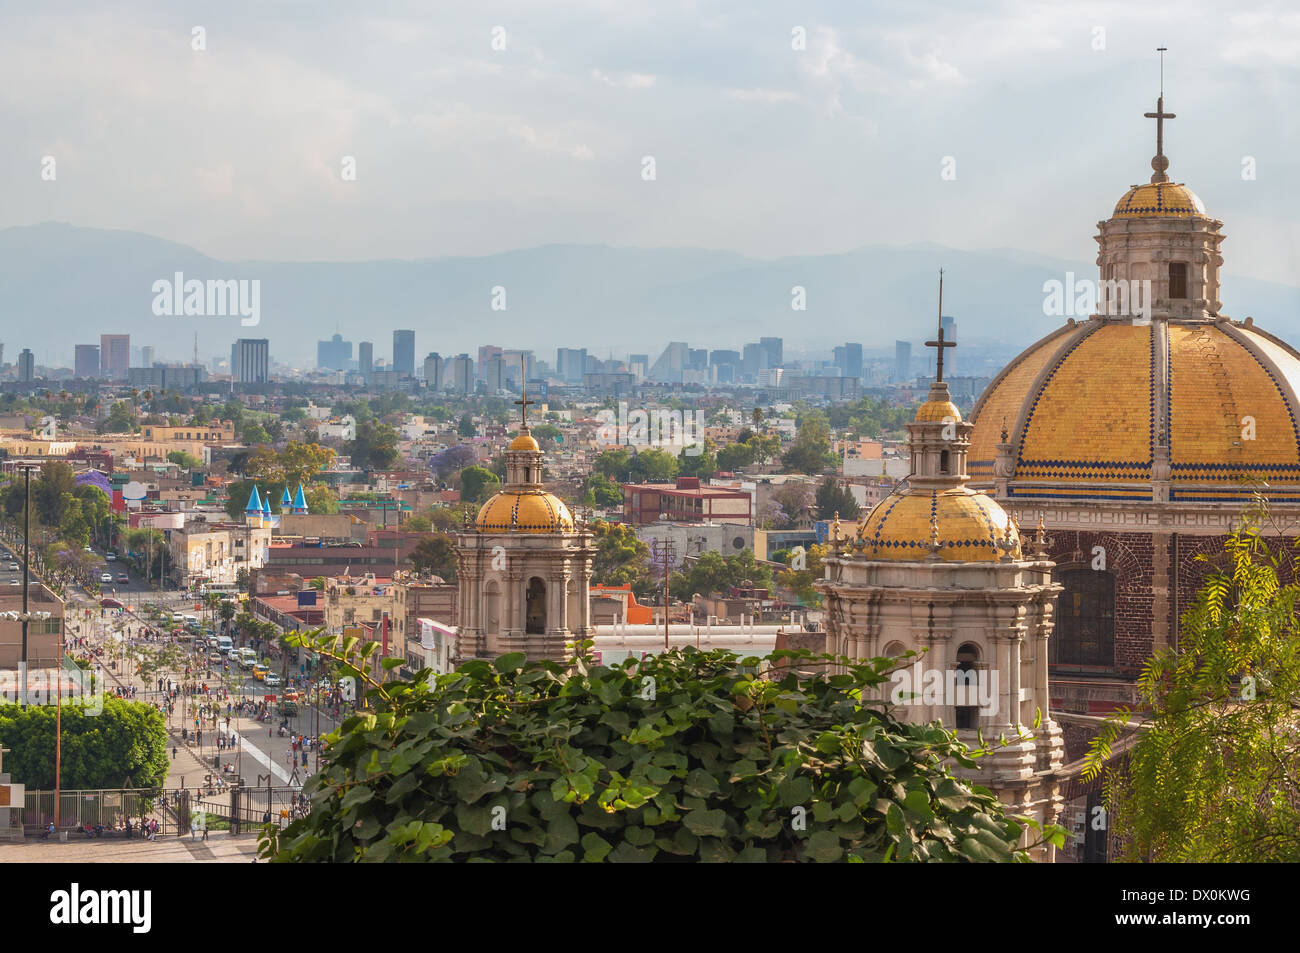 Old Basilica of Guadalupe with Mexico City skyline behind it - Stock Image